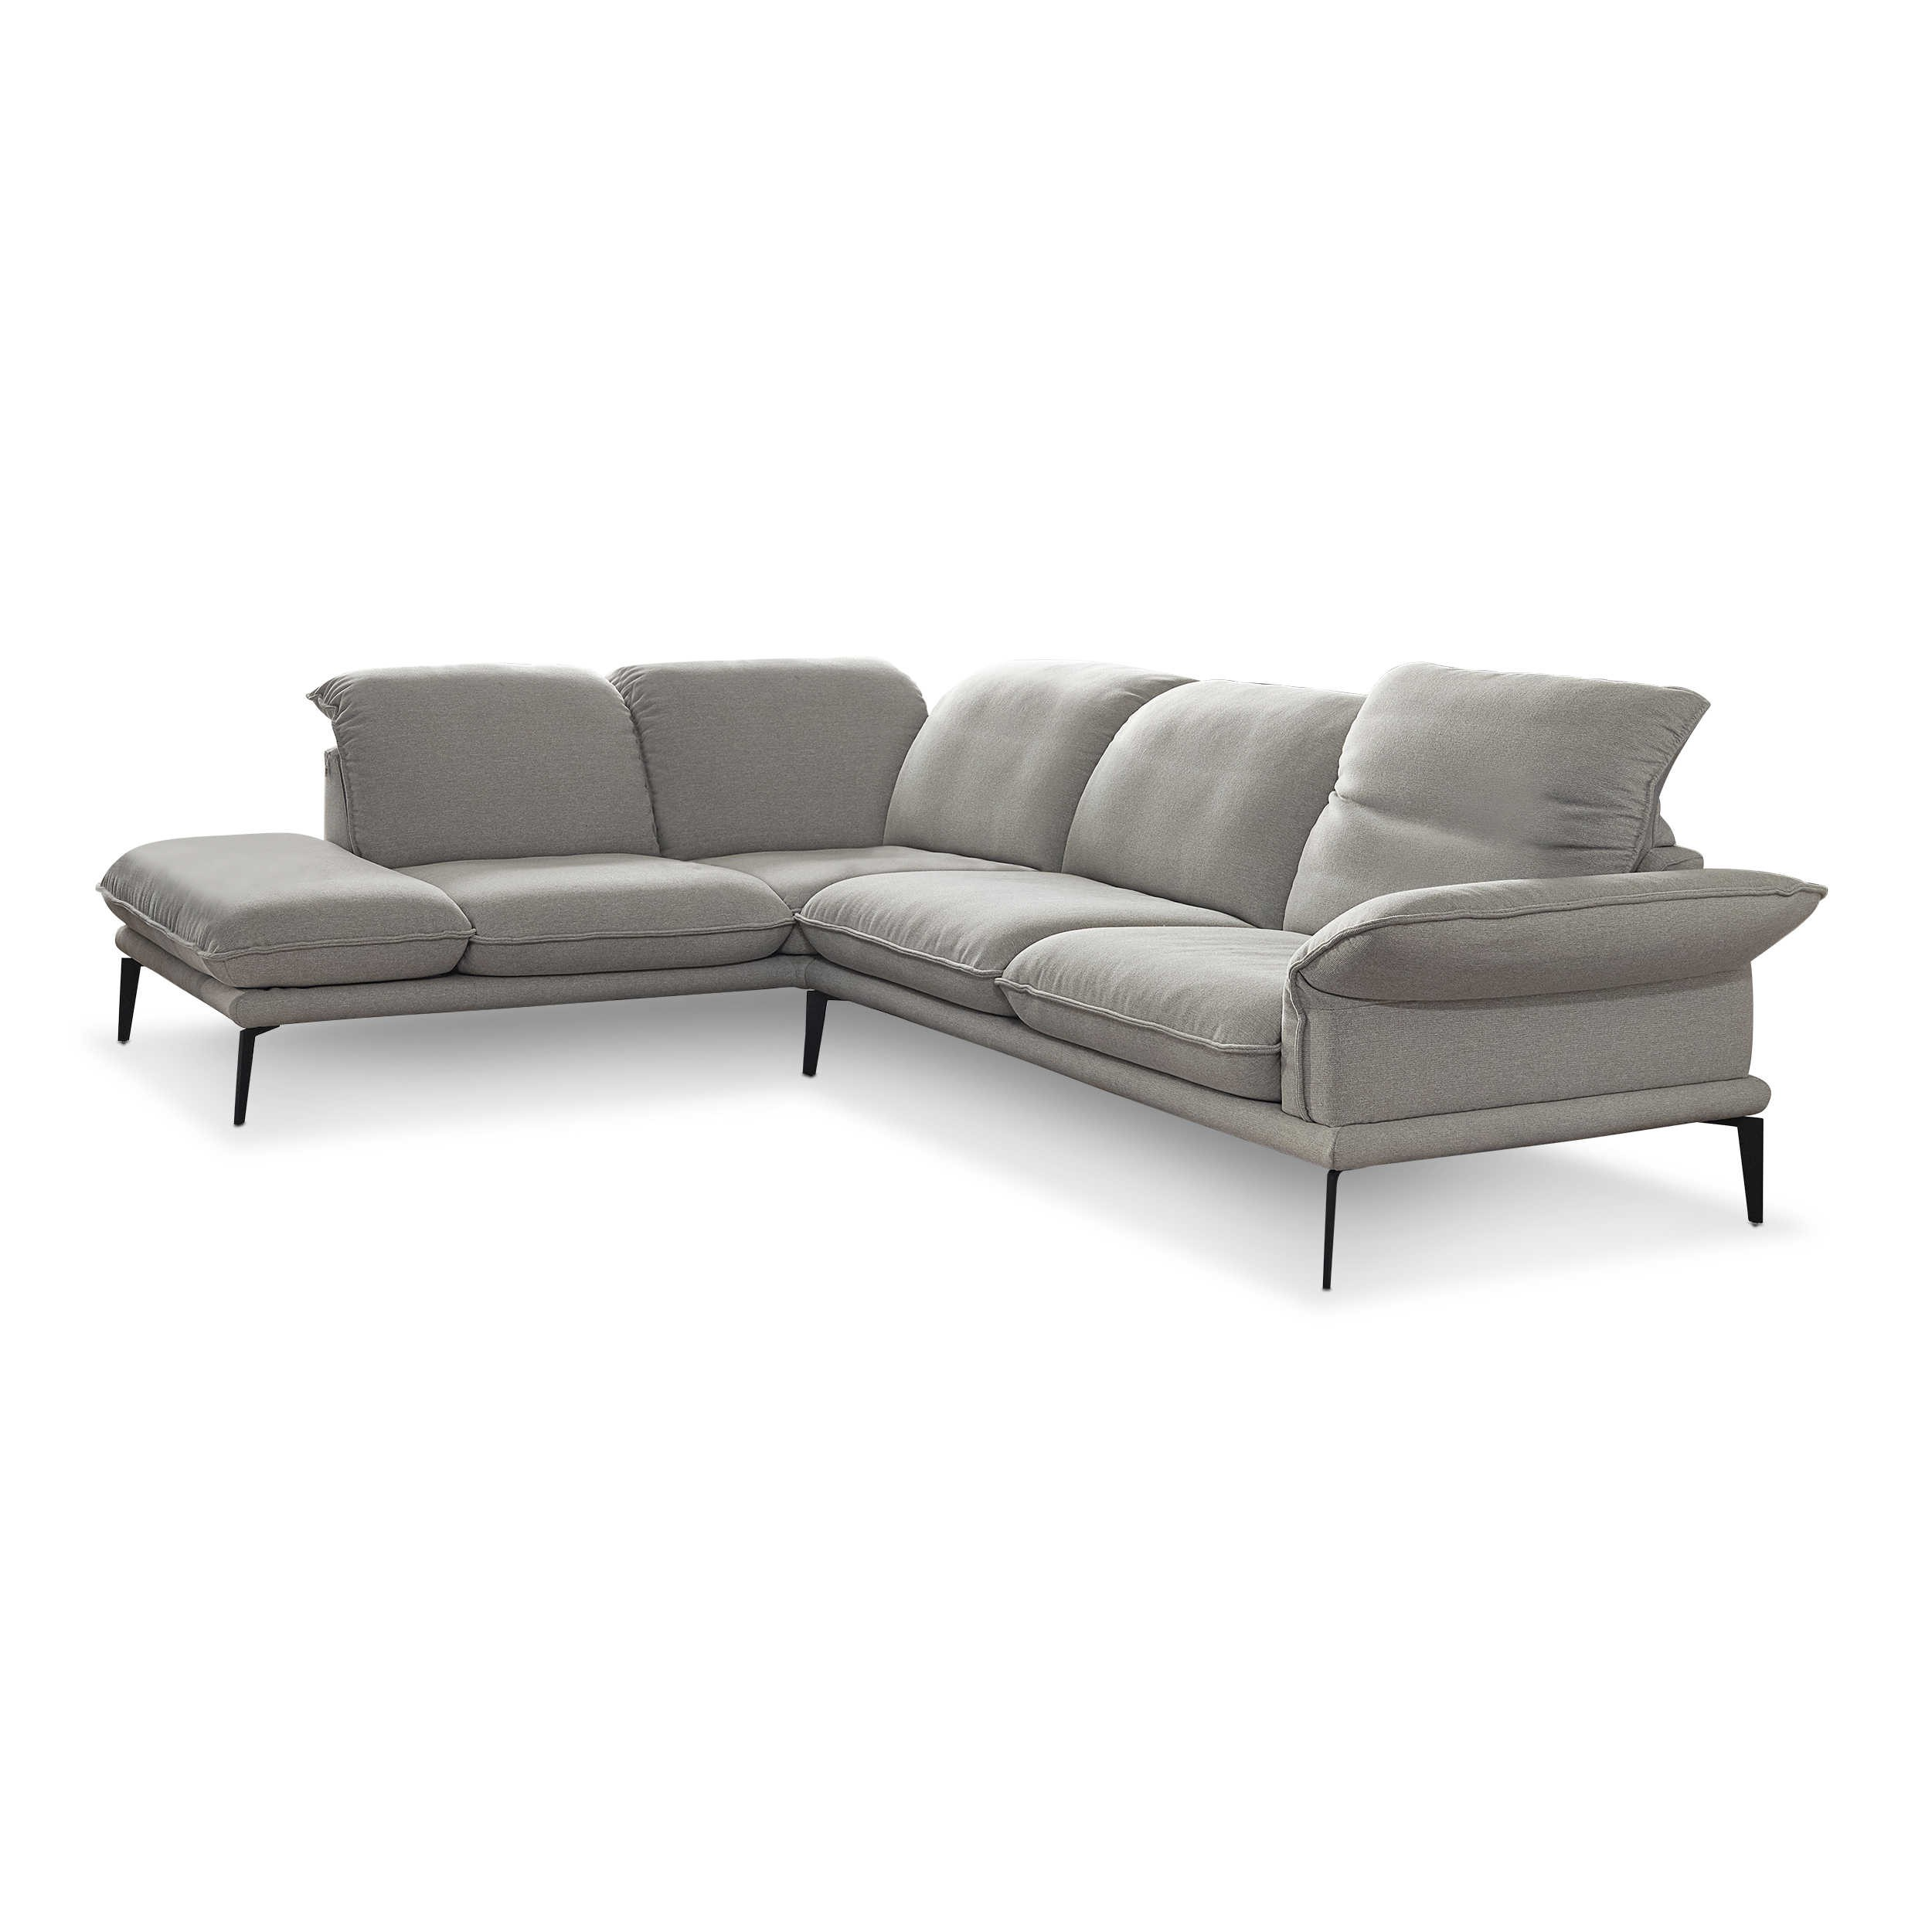 willi schillig ecksofa 24600 sherry silber stoff online kaufen bei woonio. Black Bedroom Furniture Sets. Home Design Ideas